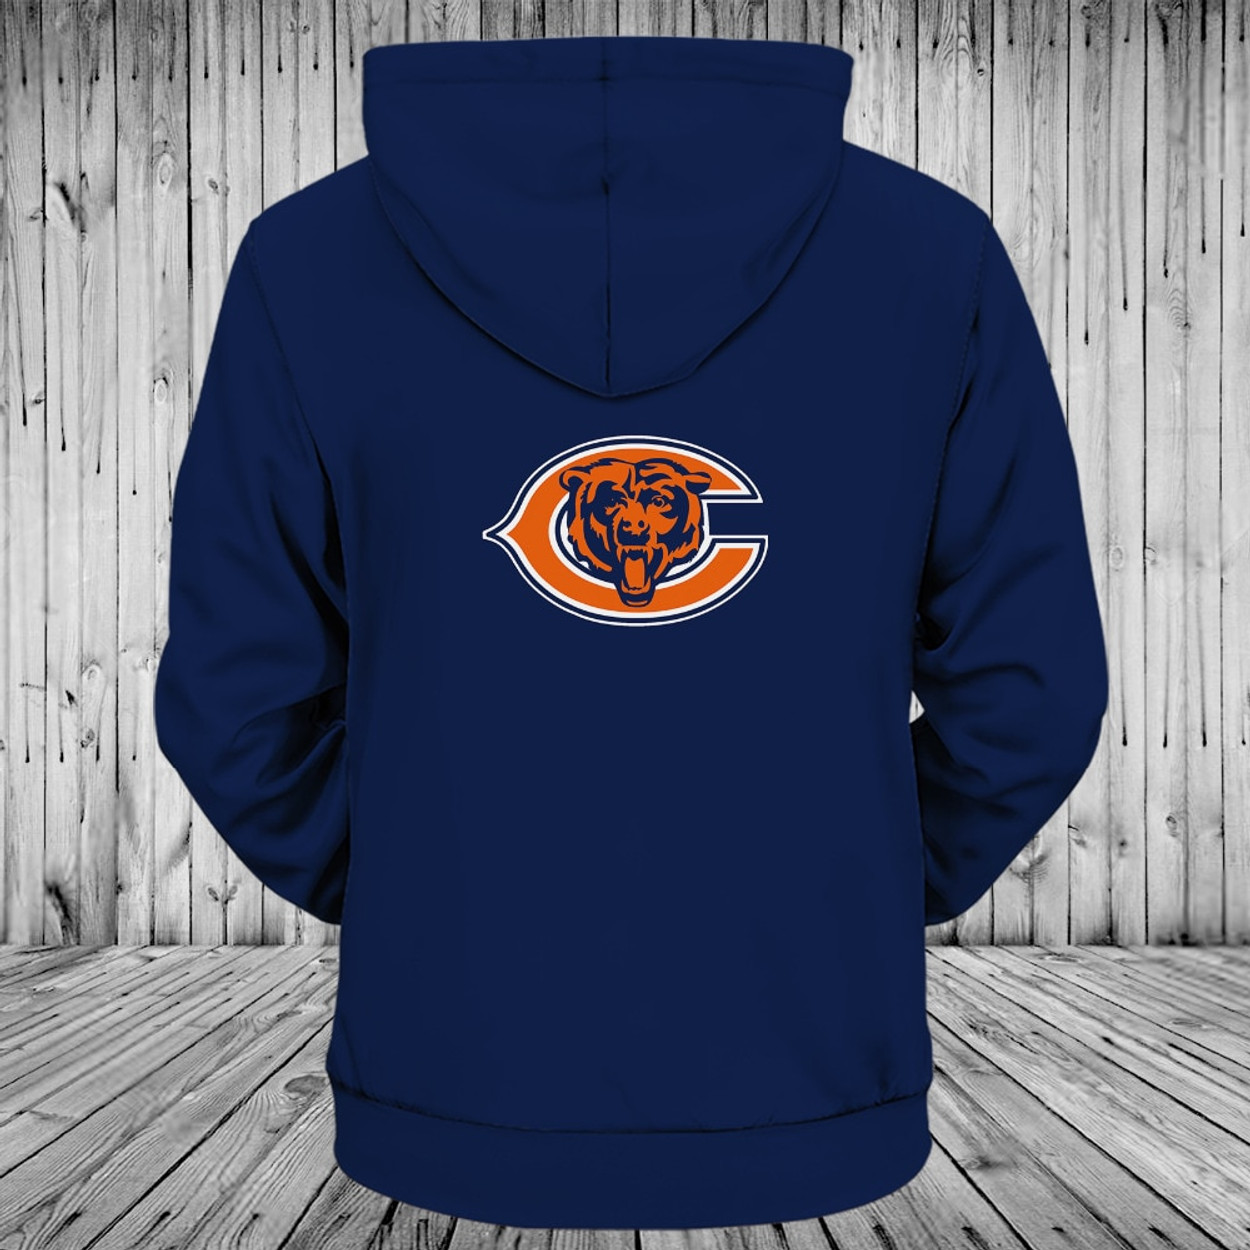 98269a08c   (OFFICIALLY-LICENSED-N.F.L.CHICAGO-BEARS-TEAM-LONG-SLEEVE-TEES NICE-CUSTOM -3D-GRAPHIC-PRINTED-DOUBLE-SIDED-ALL-OVER-GRAPHIC-BEARS-LOGOS ...